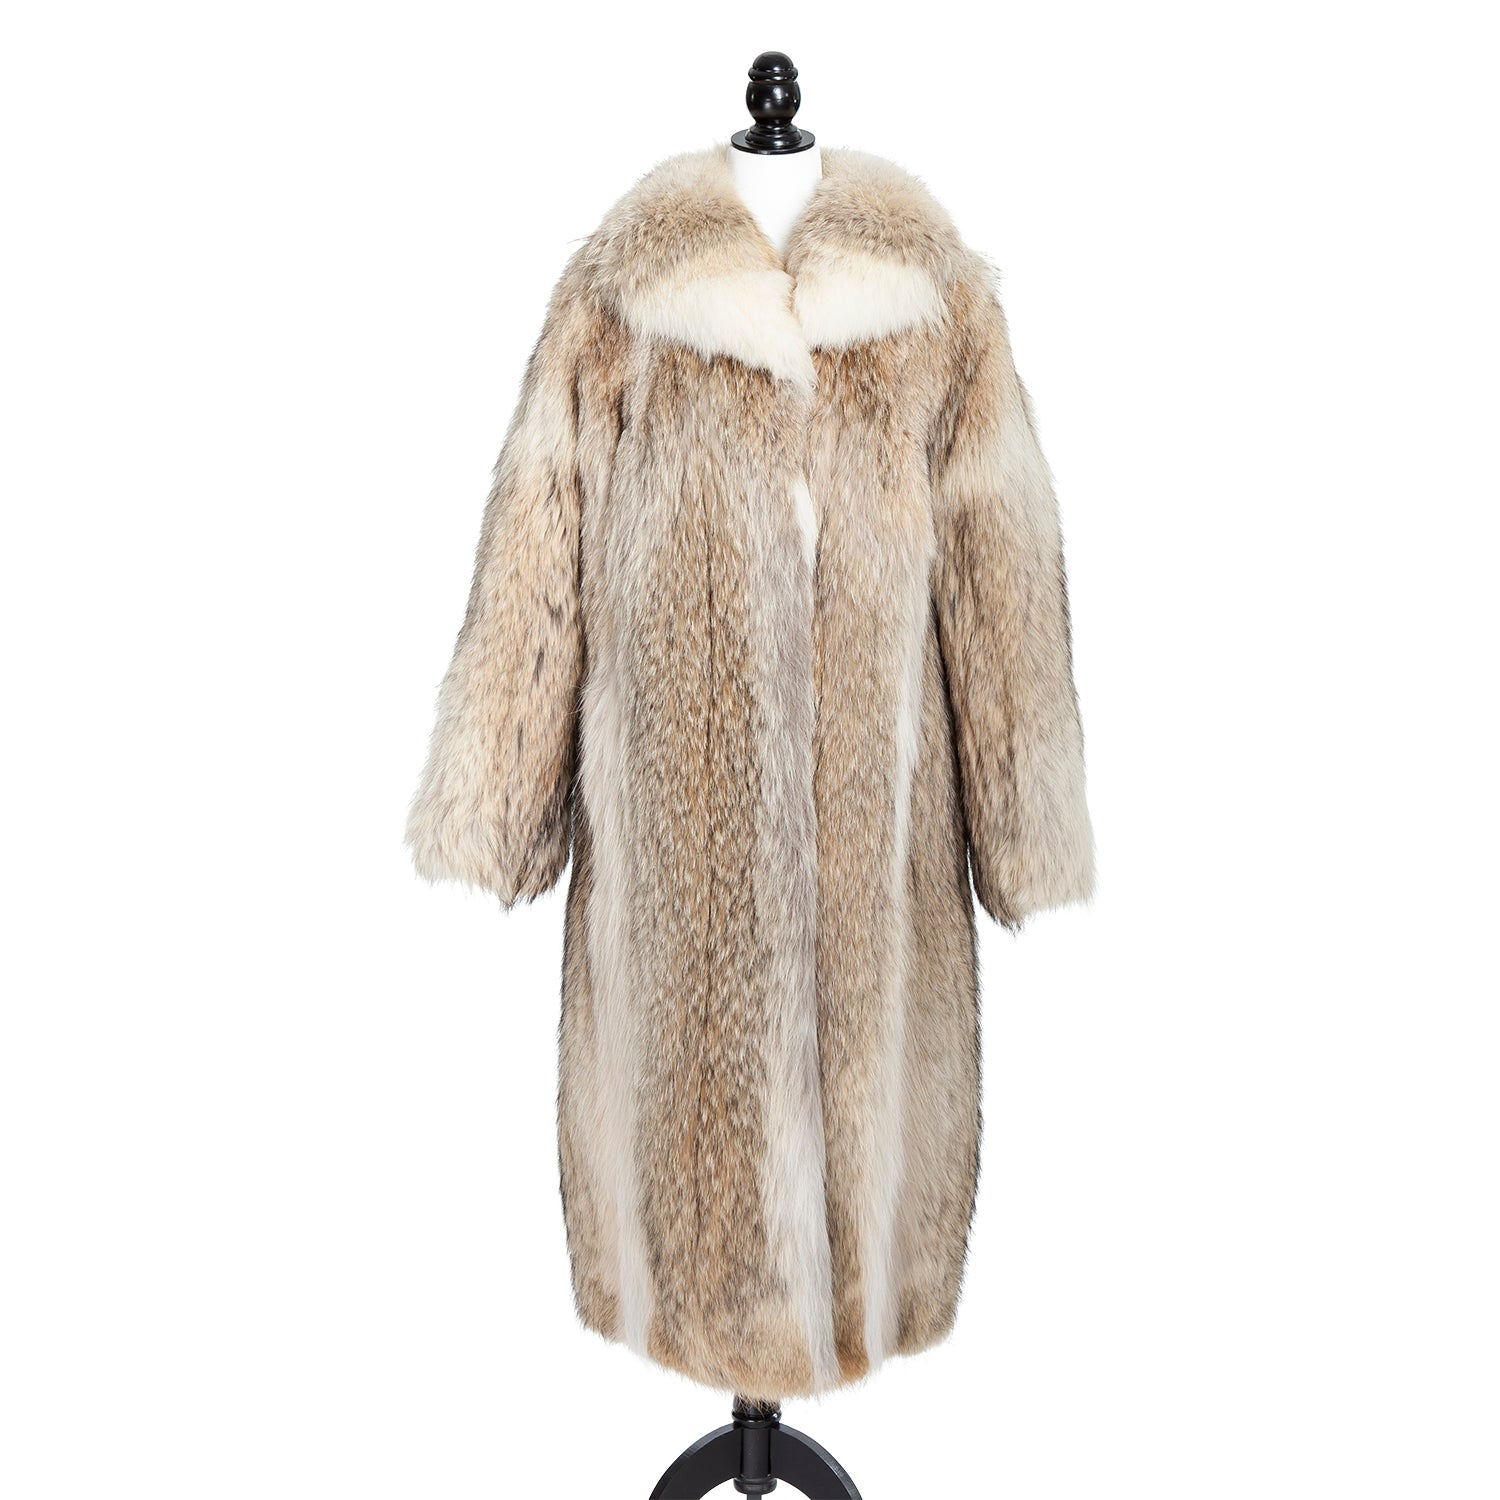 Coyote Coat with Detachable Hood